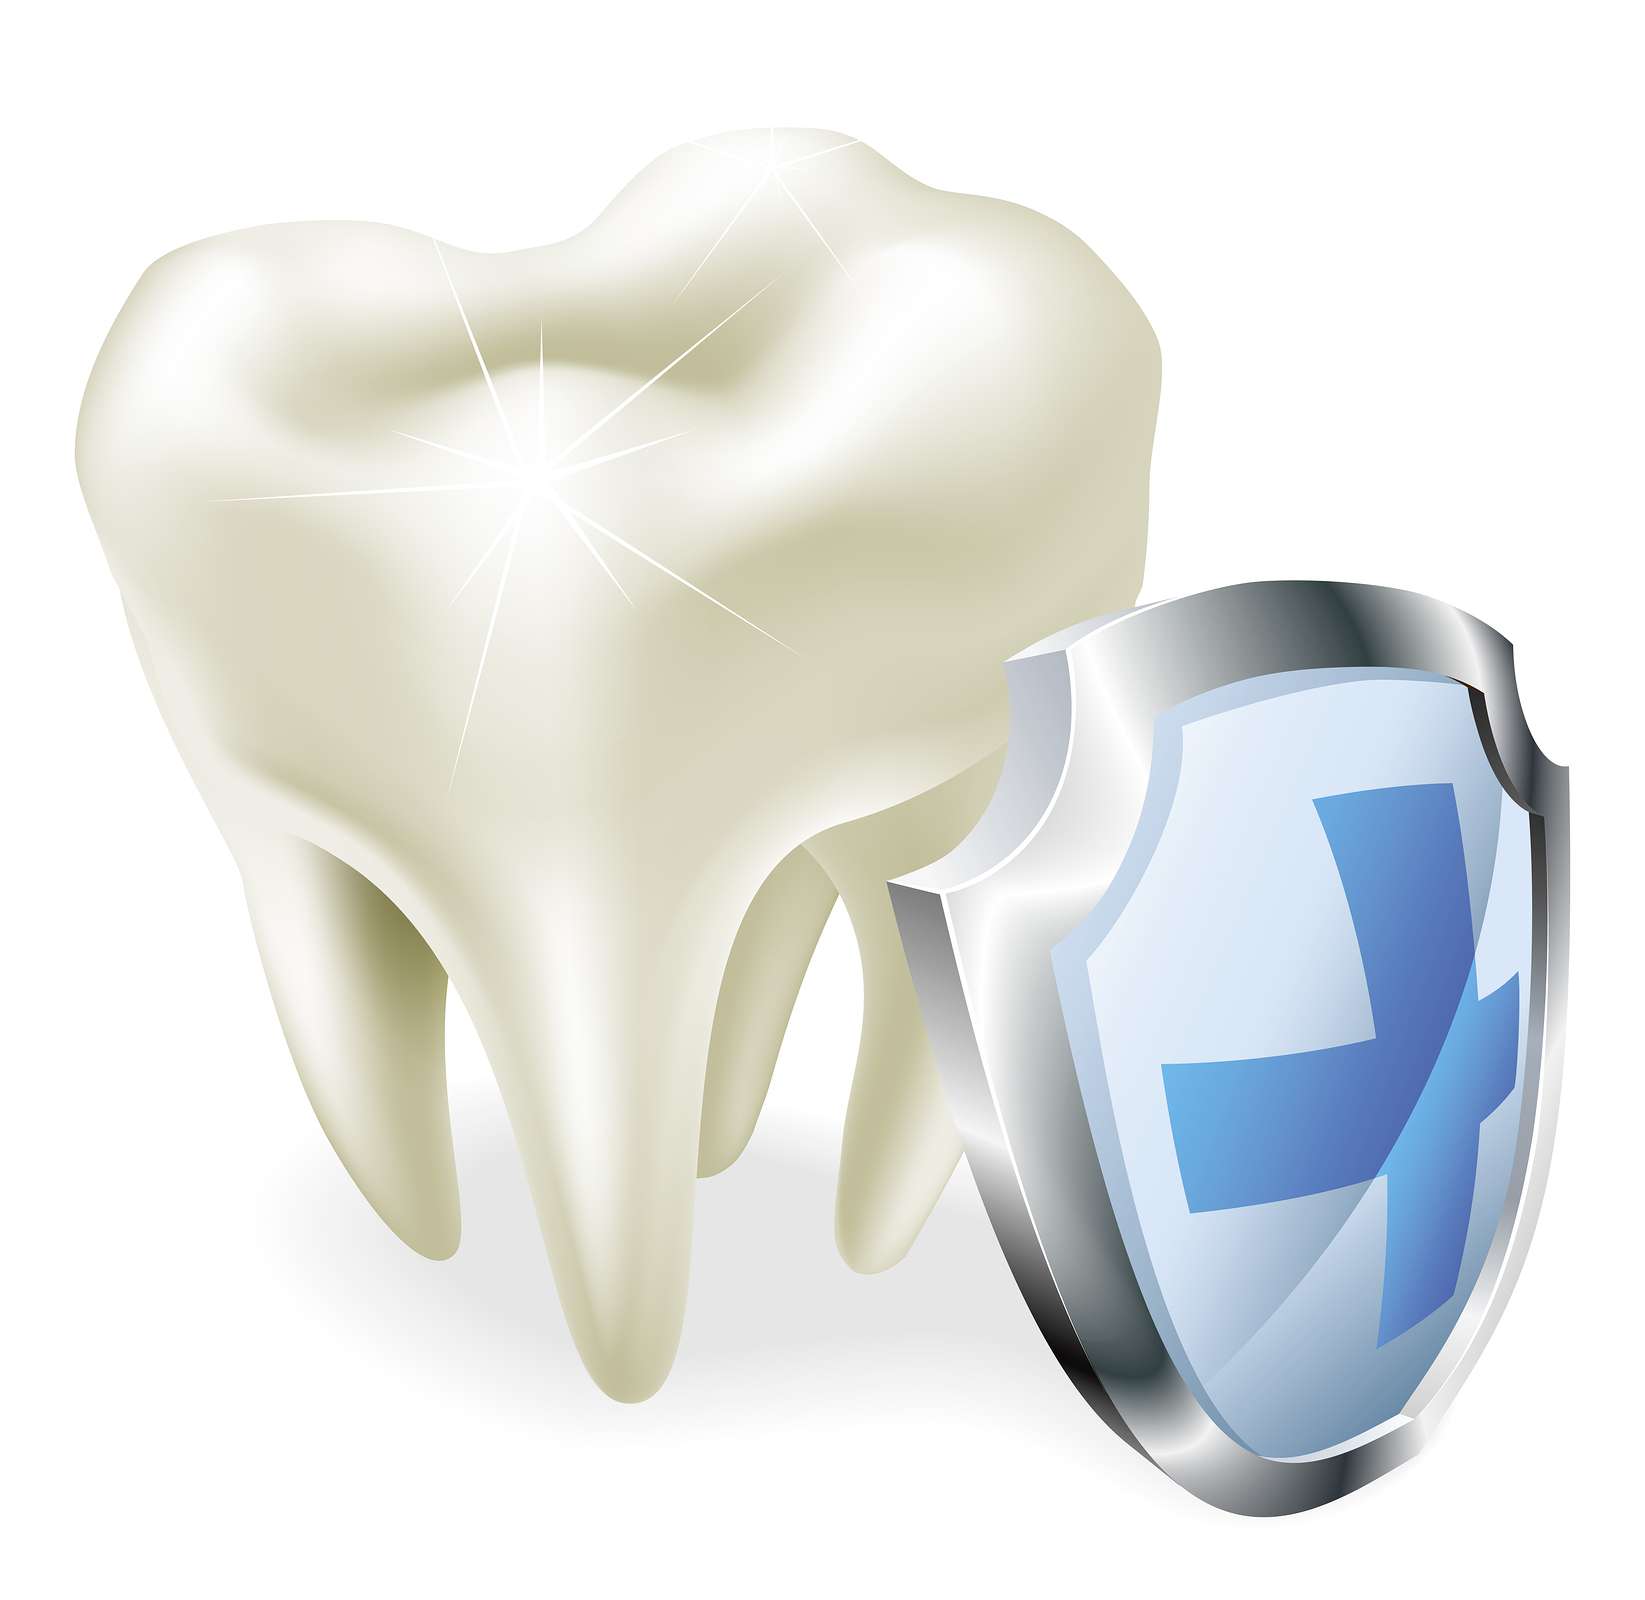 bigstock-Tooth-Protection-Concept-24323720.jpg